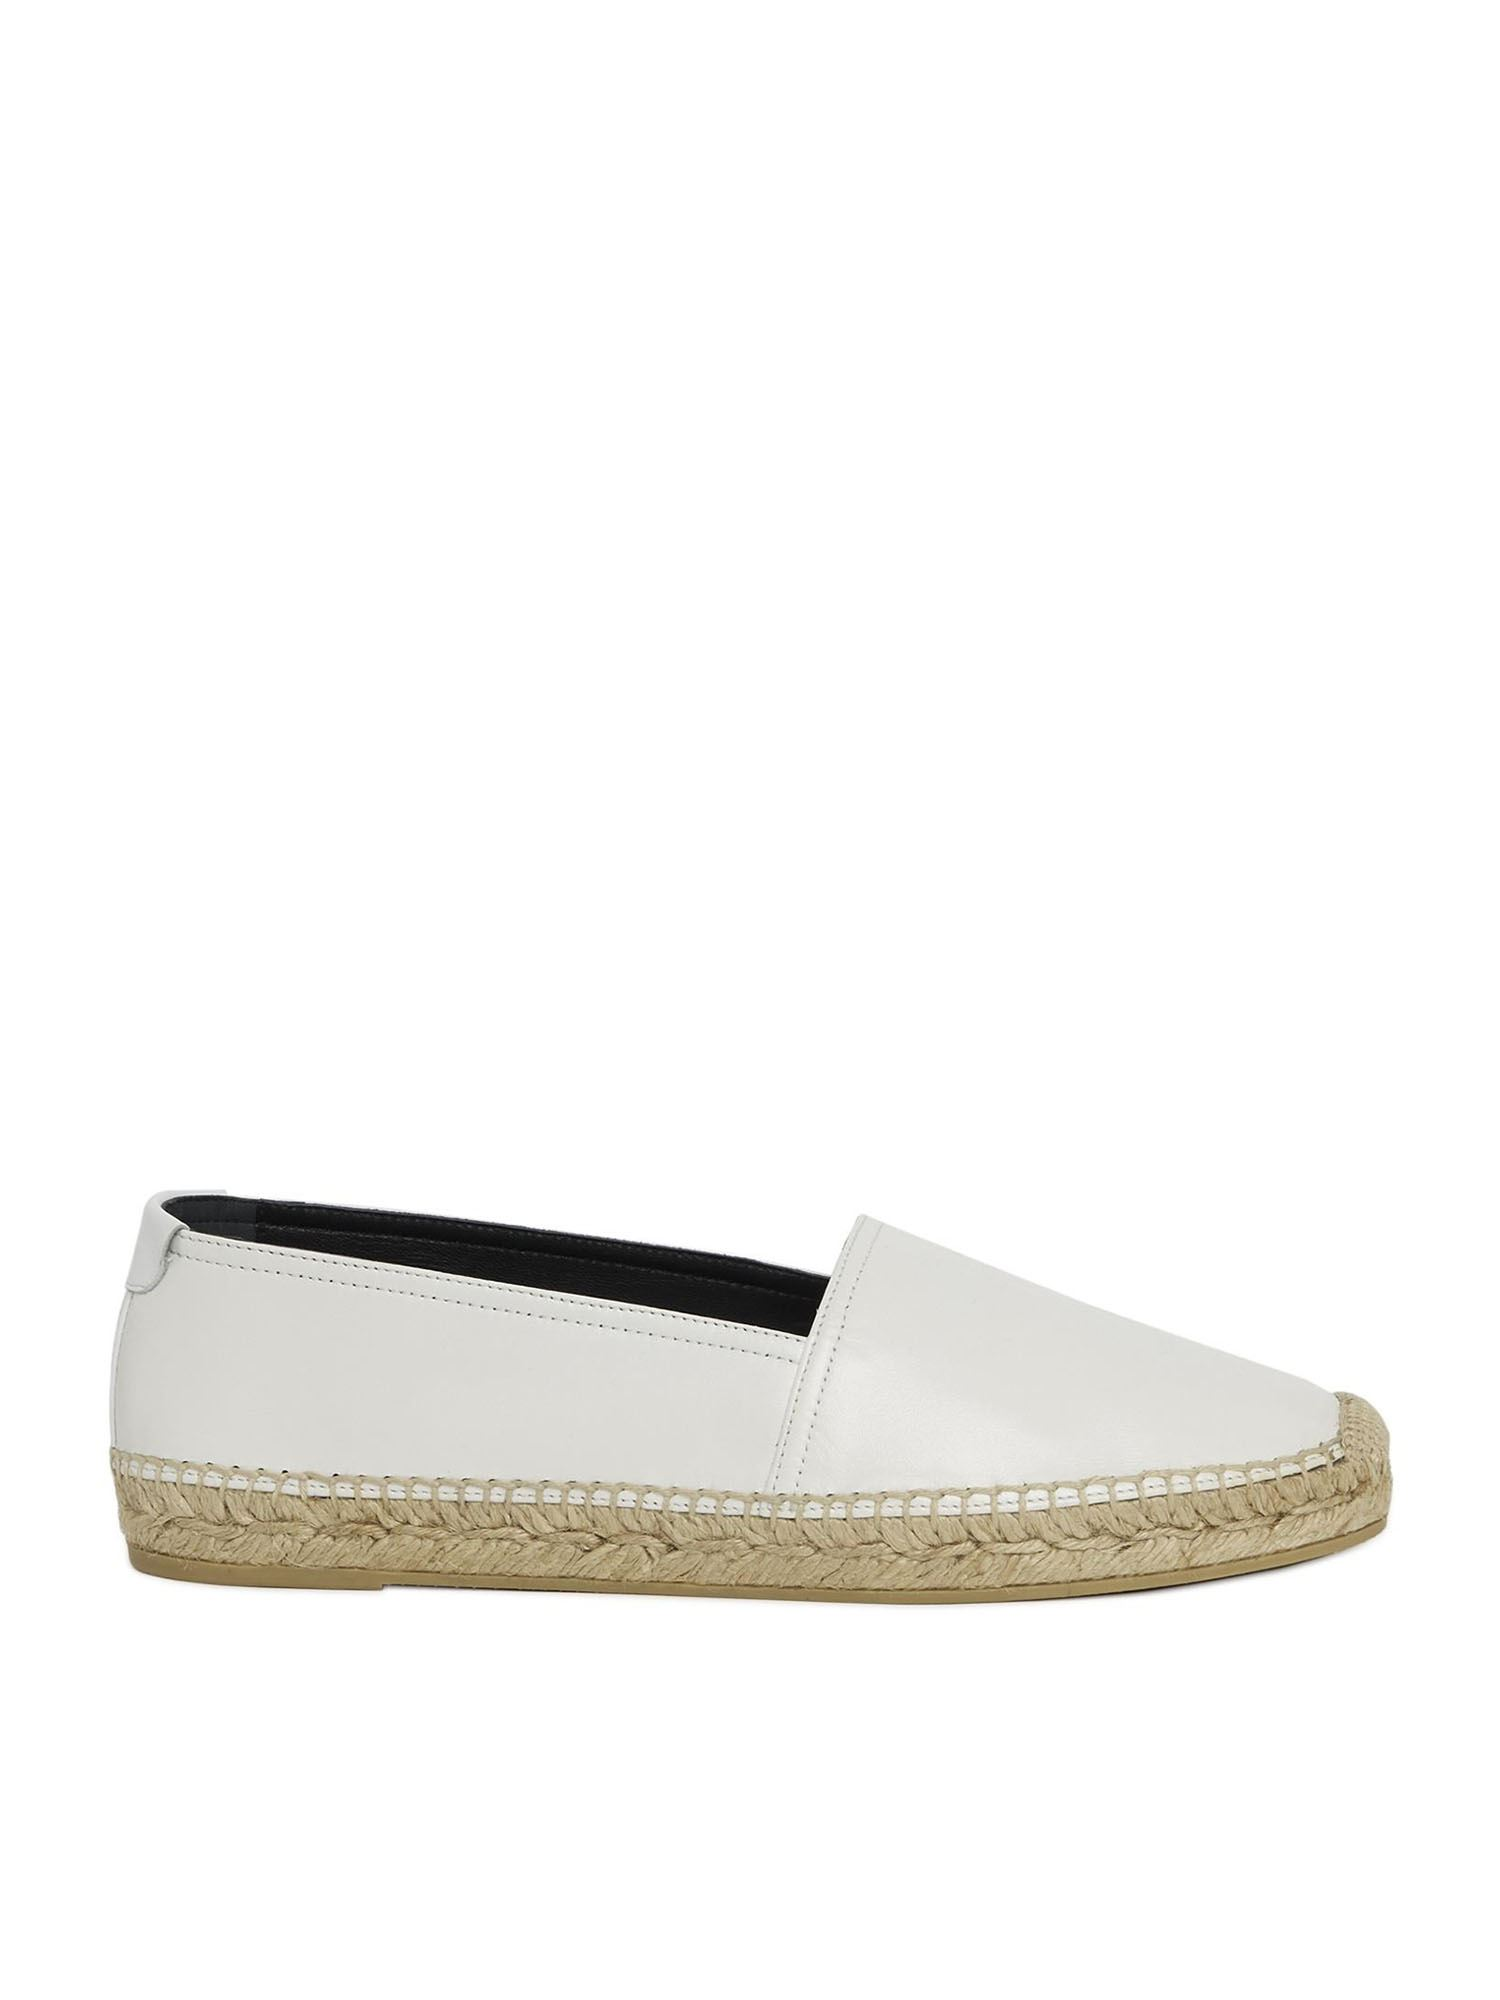 Saint Laurent LEATHER ESPADRILLES IN WHITE